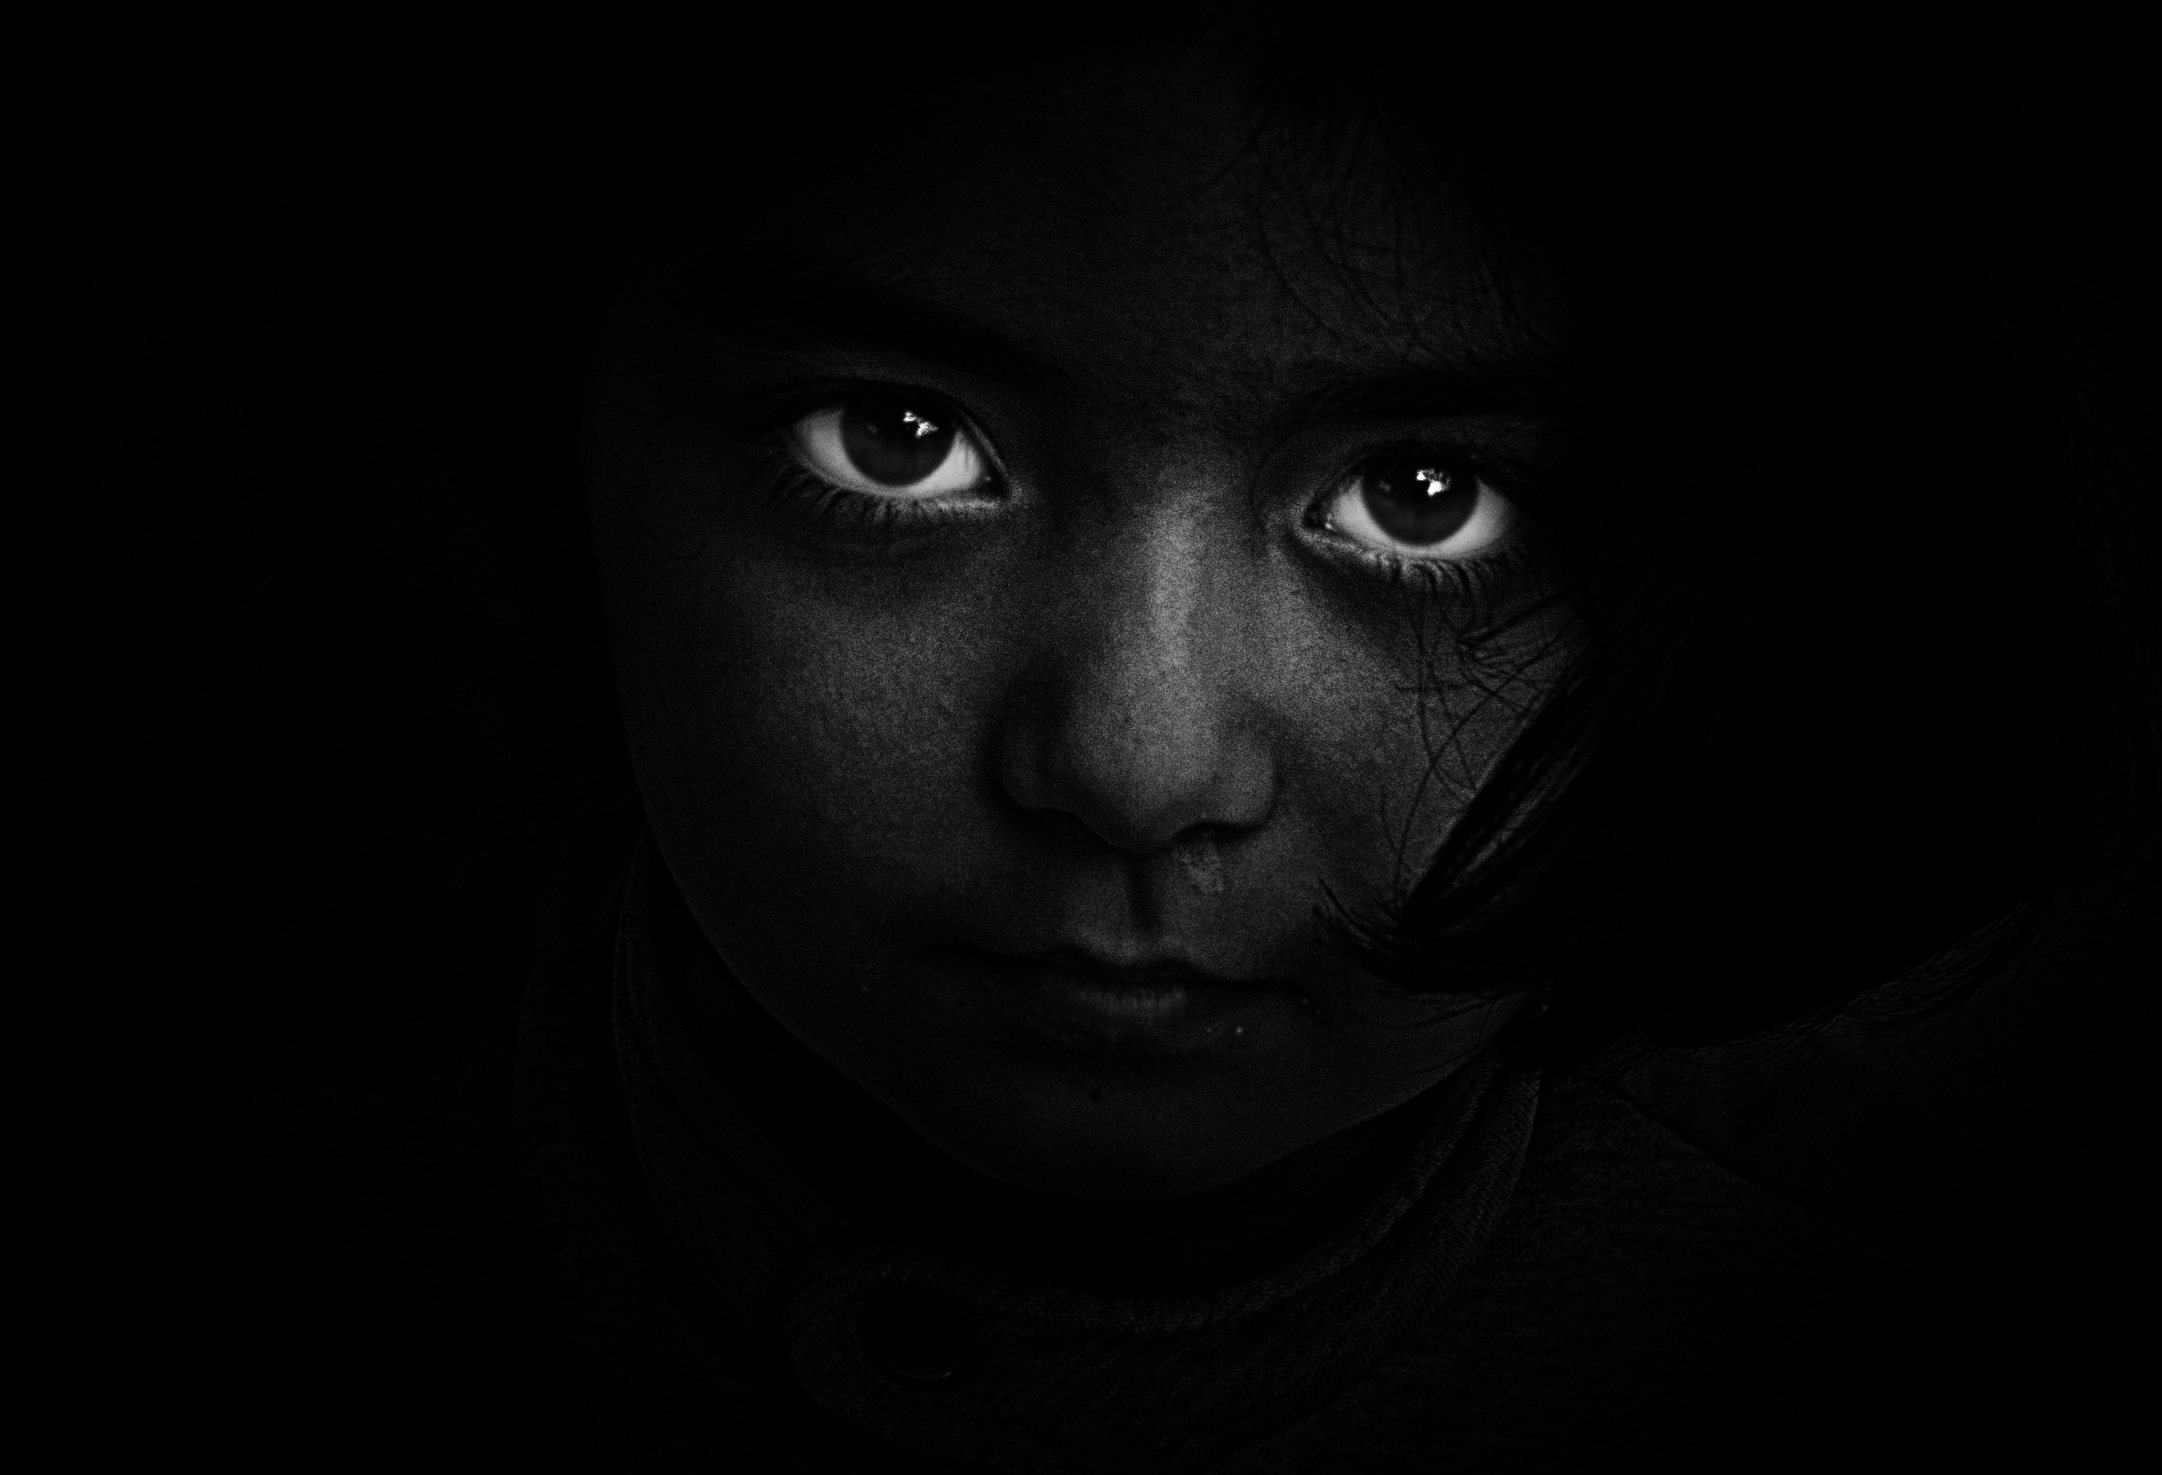 Free stock photo of black-and-white, person, dark, girl